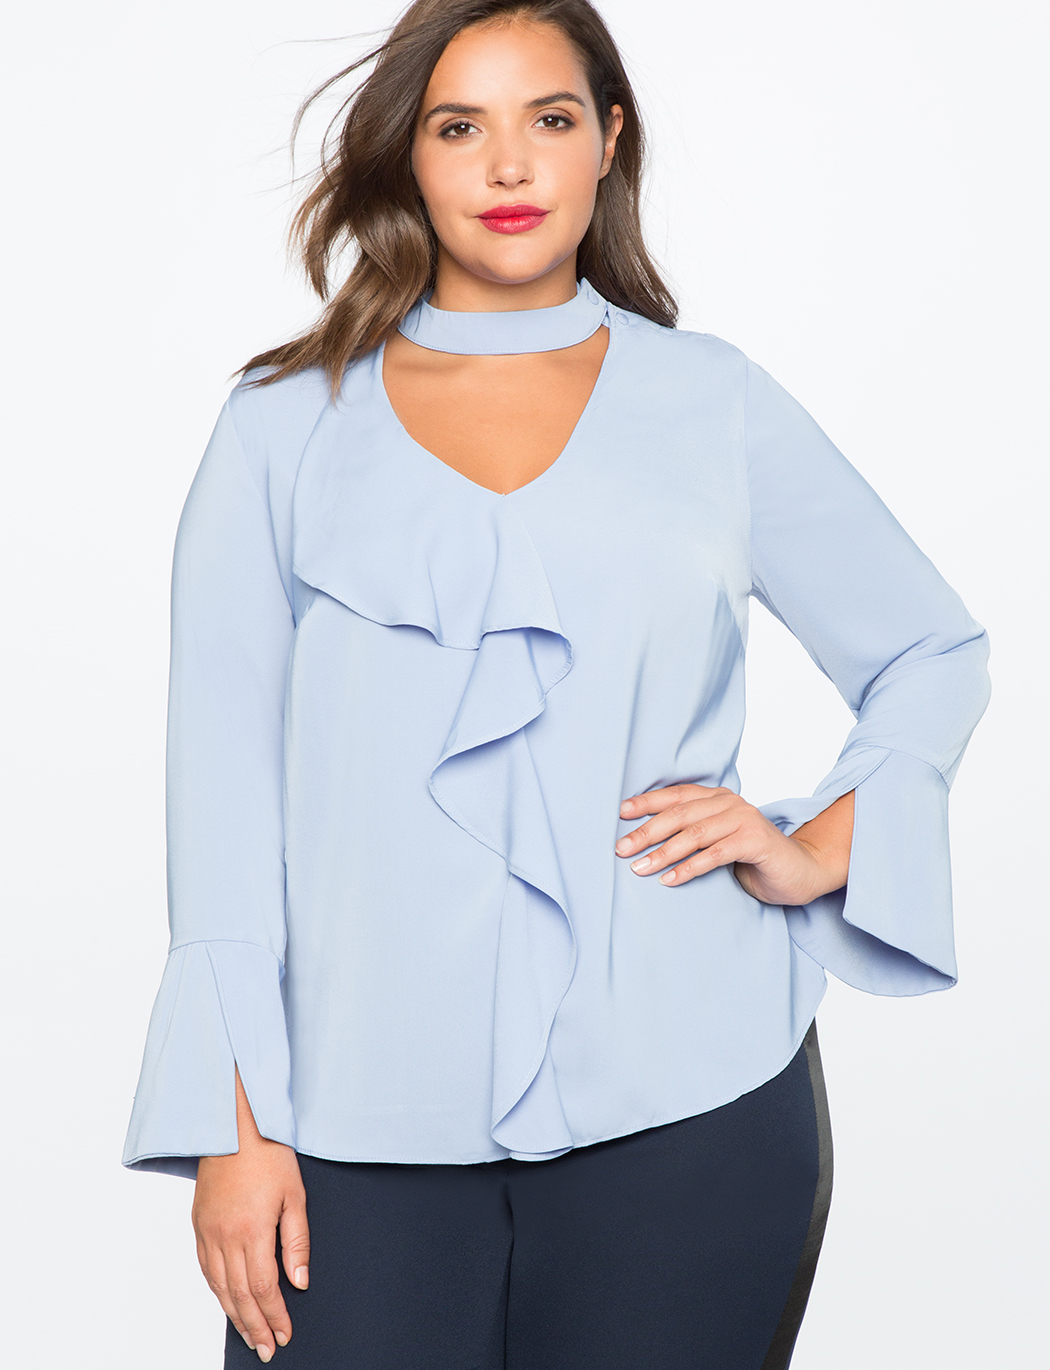 V Neck Ruffle Front Blouse Women S Plus Size Tops Eloquii